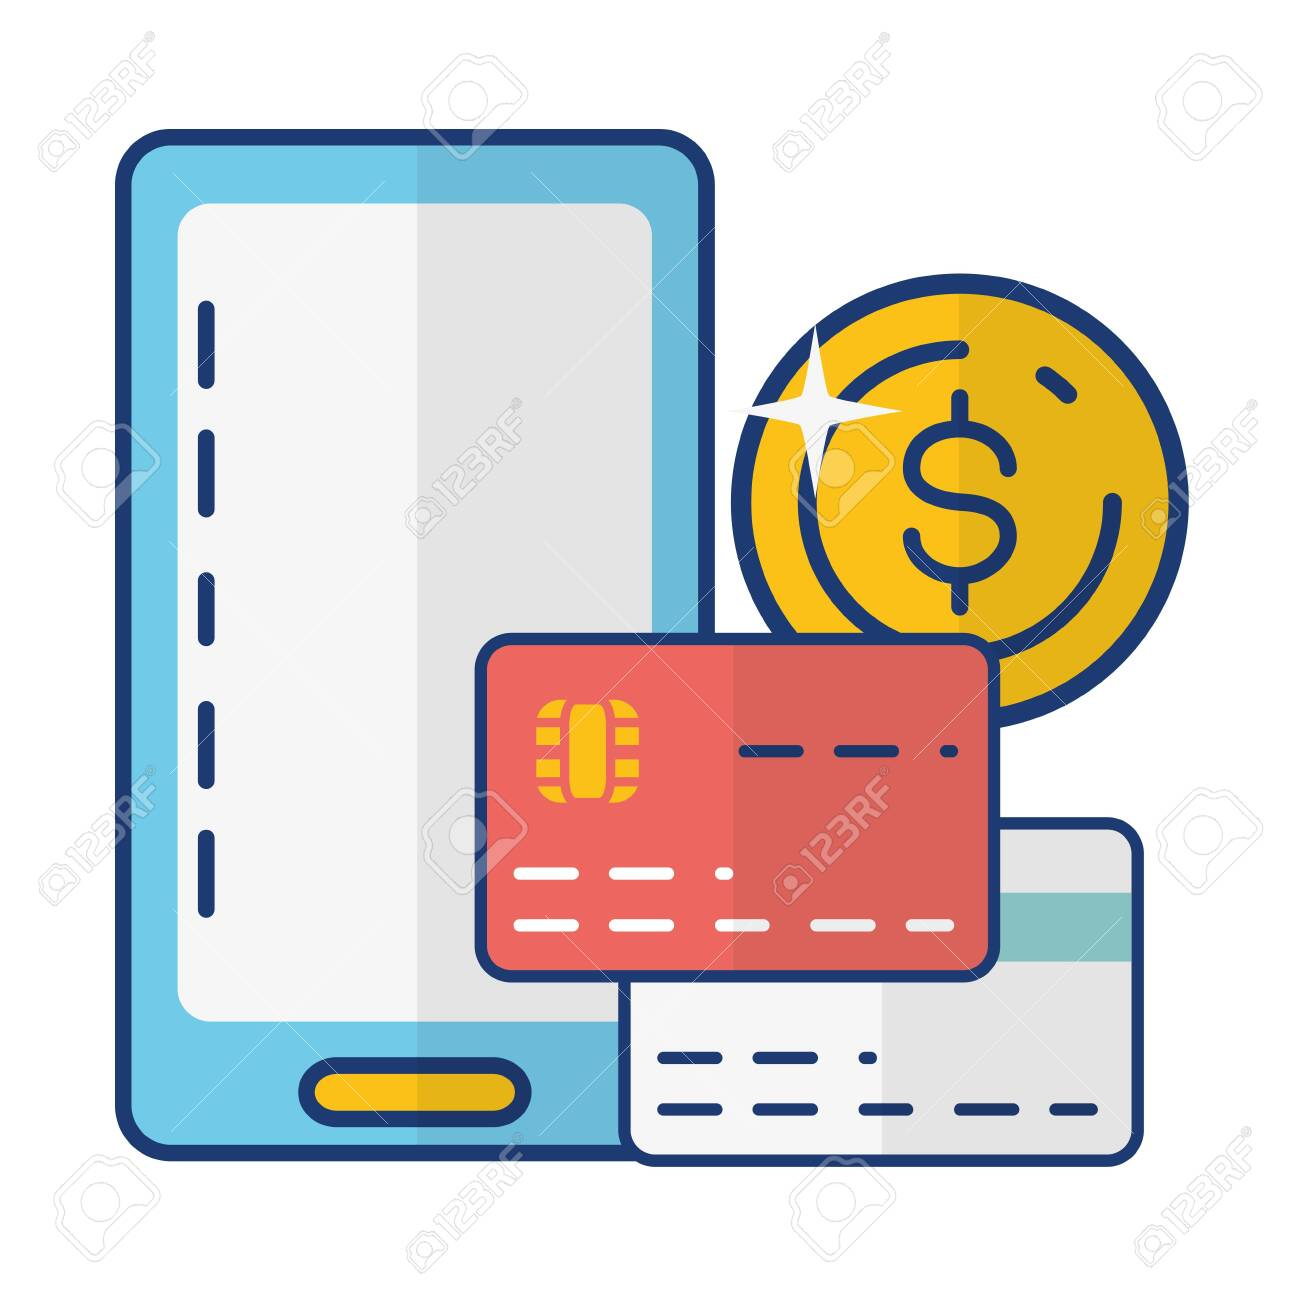 Smartphone Bank Cards Money Online Payment Vector Illustration Royalty Free Cliparts Vectors And Stock Illustration Image 128920538